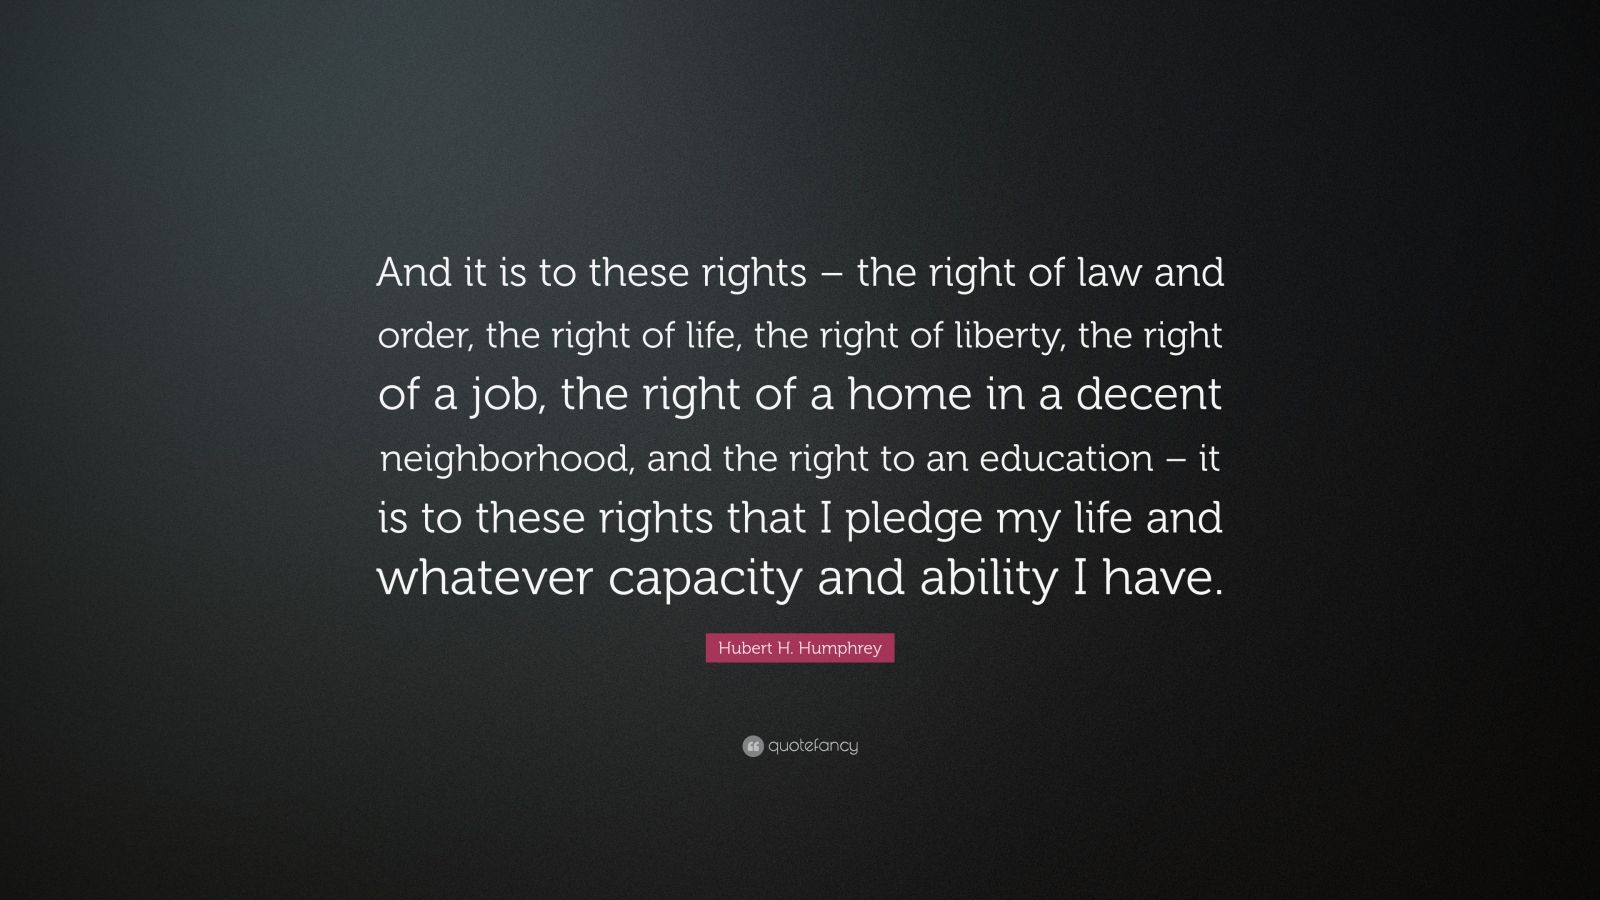 "Hubert H. Humphrey Quote: ""And it is to these rights – the right of law and order, the right of life, the right of liberty, the right of a job, the right of a home in a decent neighborhood, and the right to an education – it is to these rights that I pledge my life and whatever capacity and ability I have."""